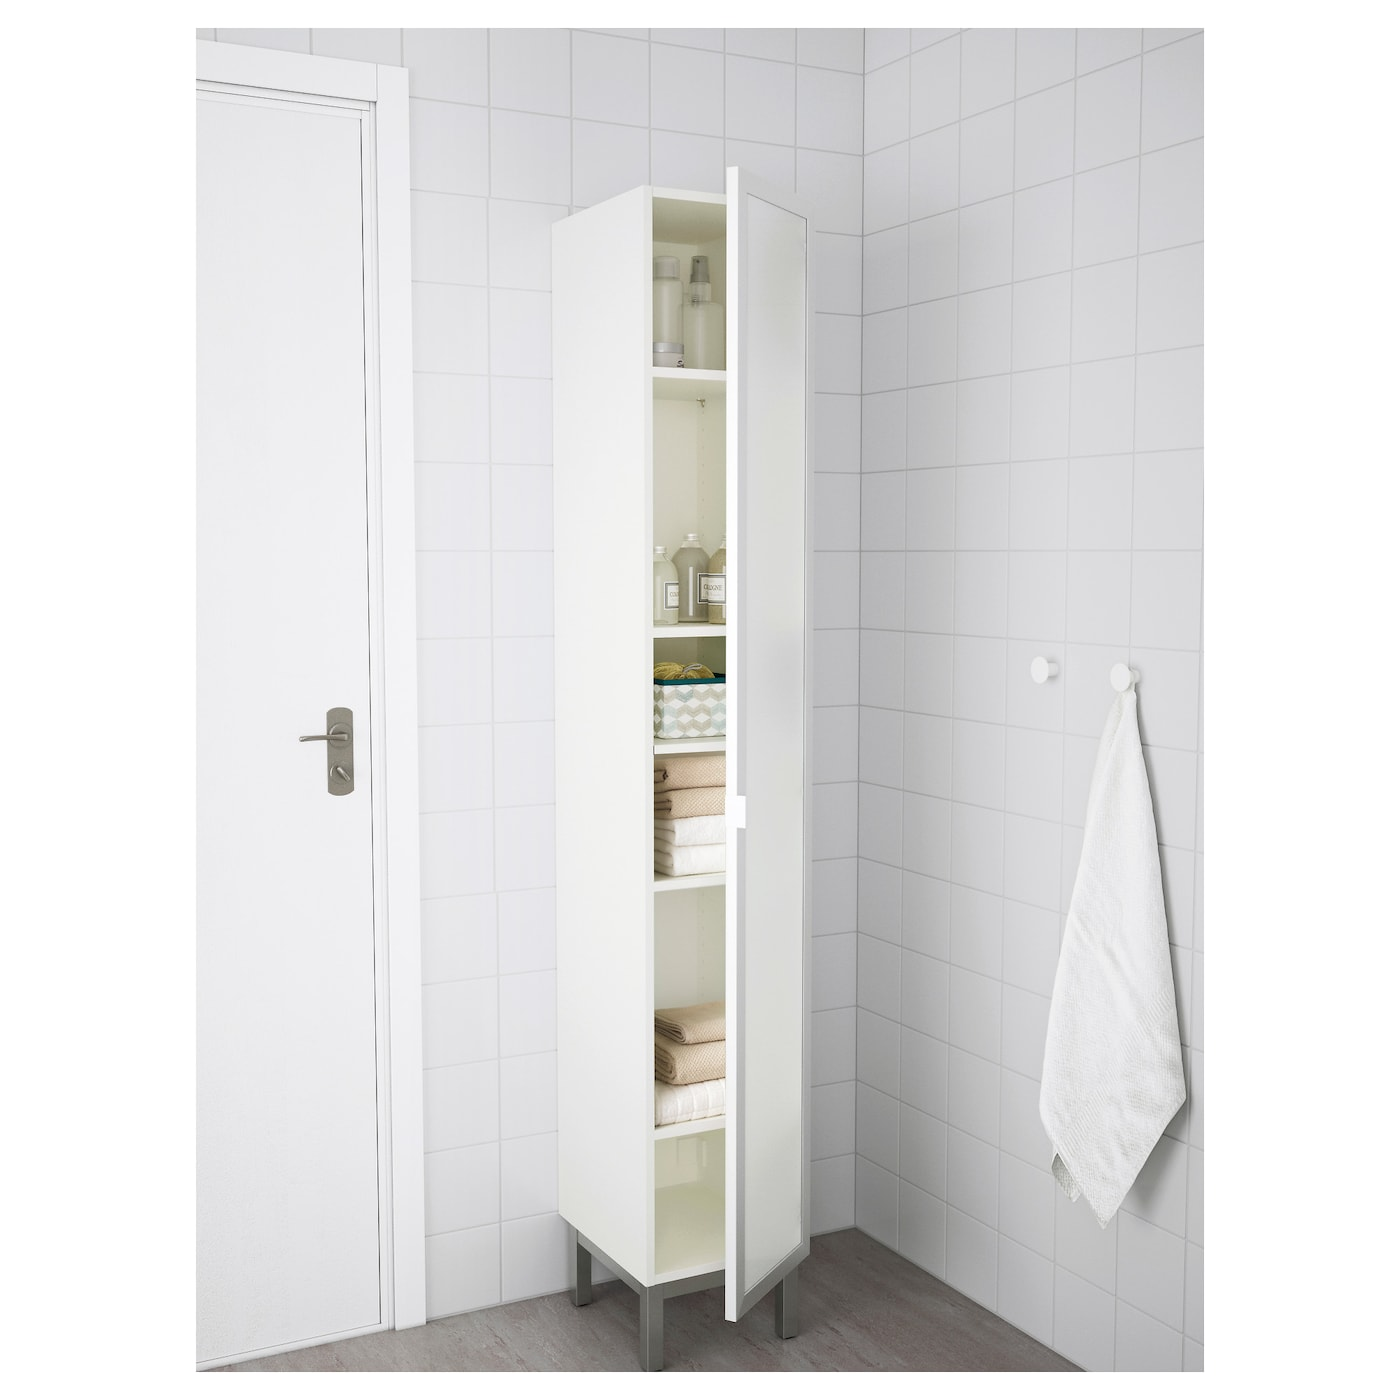 Ikea LillÅngen High Cabinet You Can Mount The Door To Open From Right Or Left